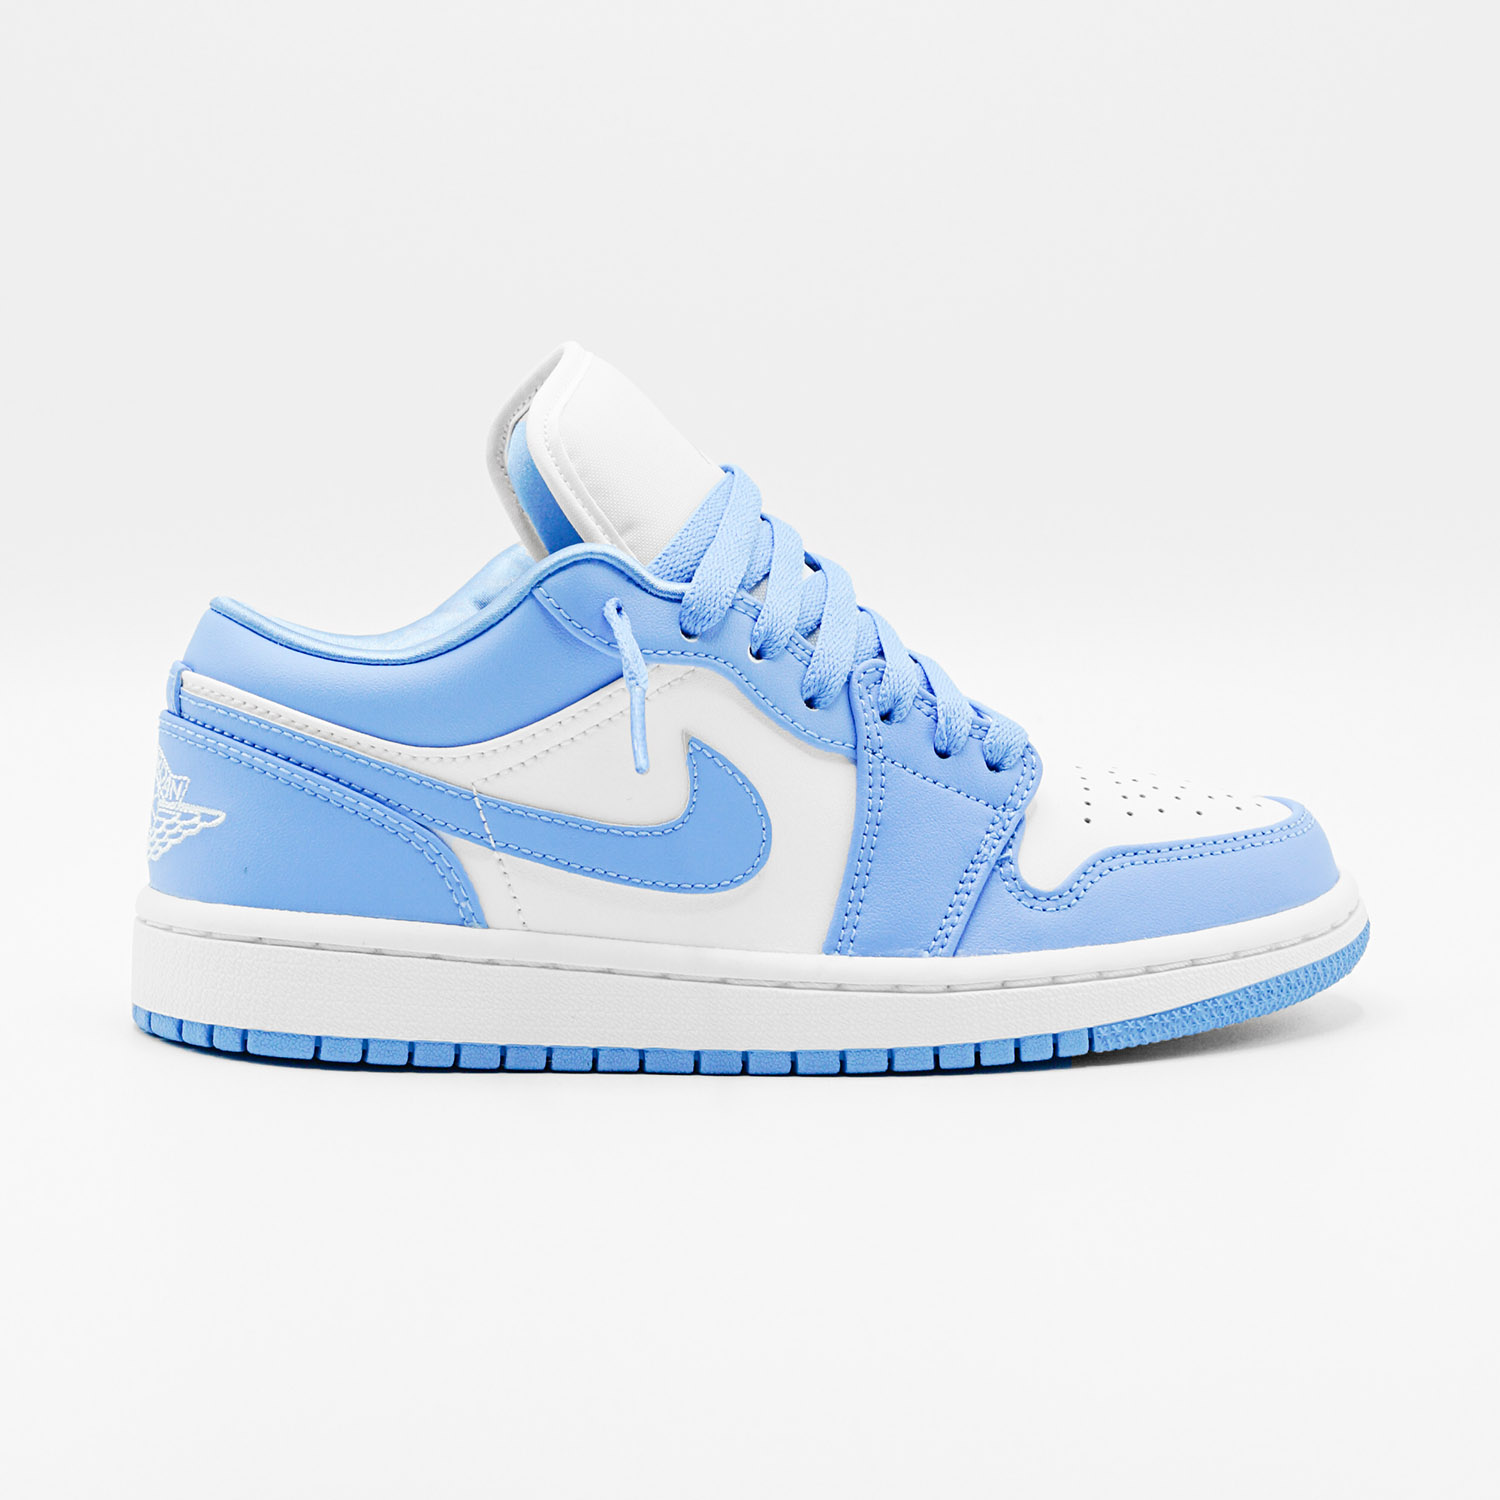 nike air jordan 1 low femme blie university